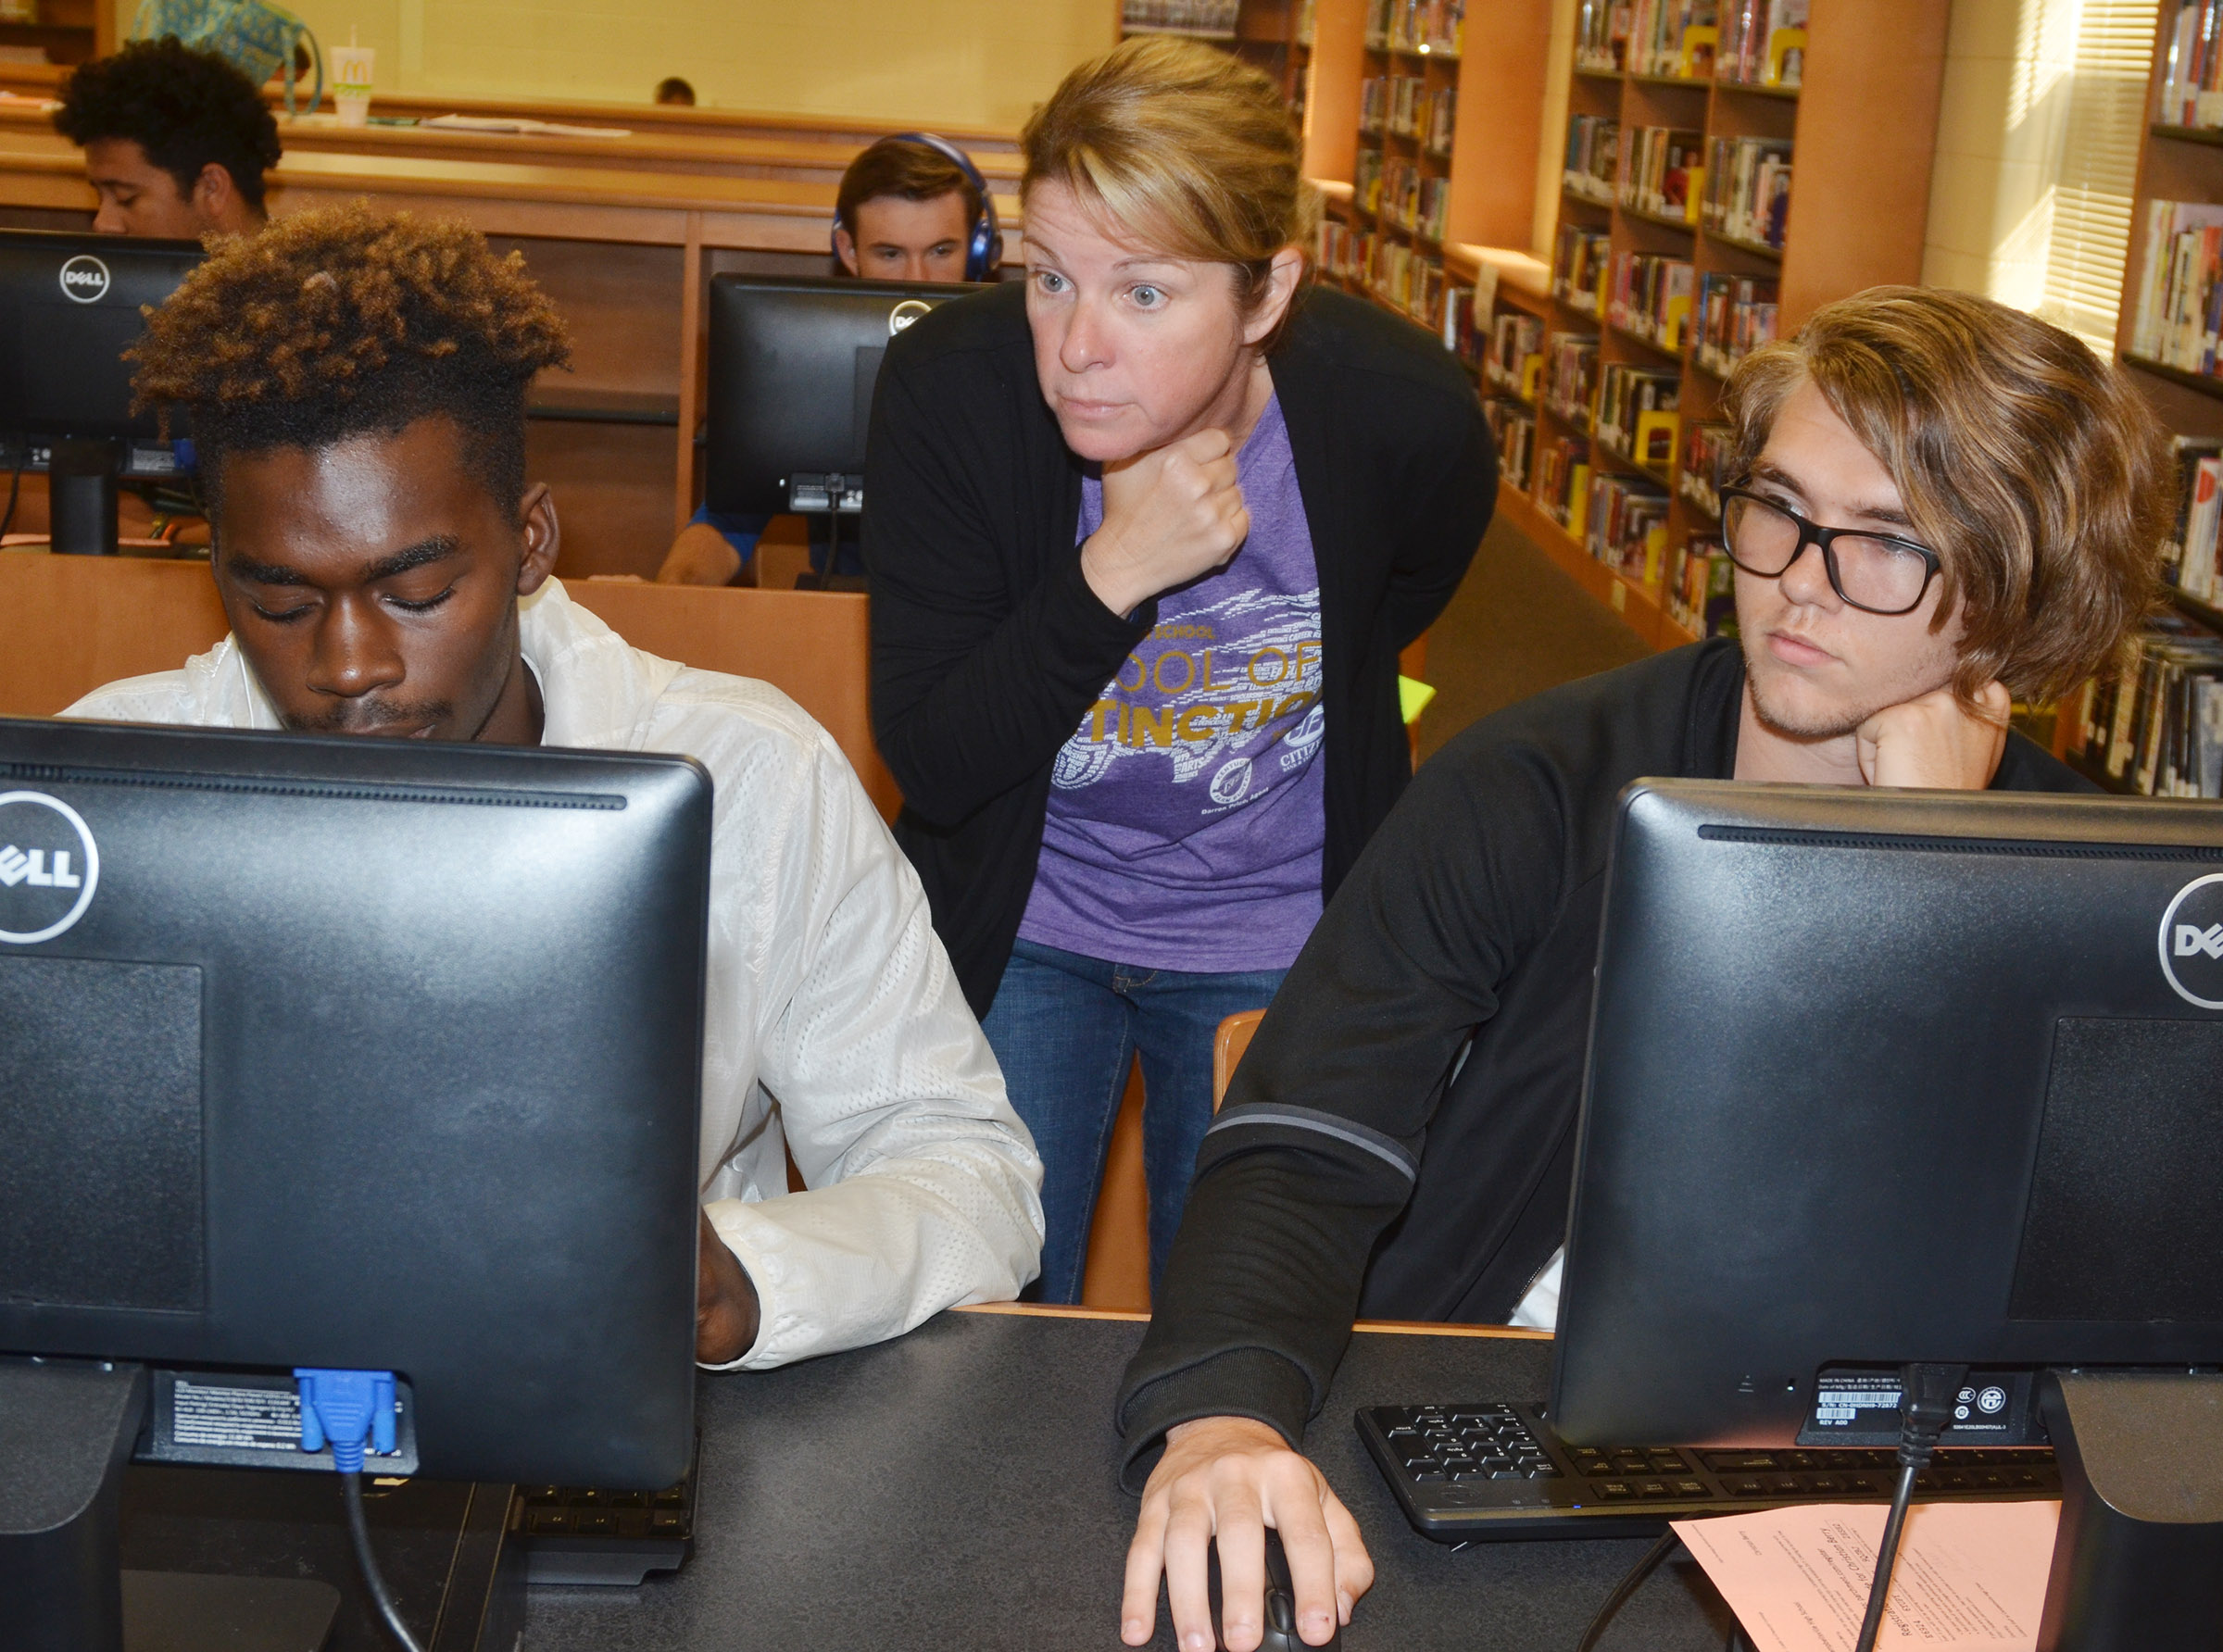 CHS College and Career Readiness Counselor Dee Doss helps seniors Jonta' Strawther, at left, and Christian Berry submit their college applications.